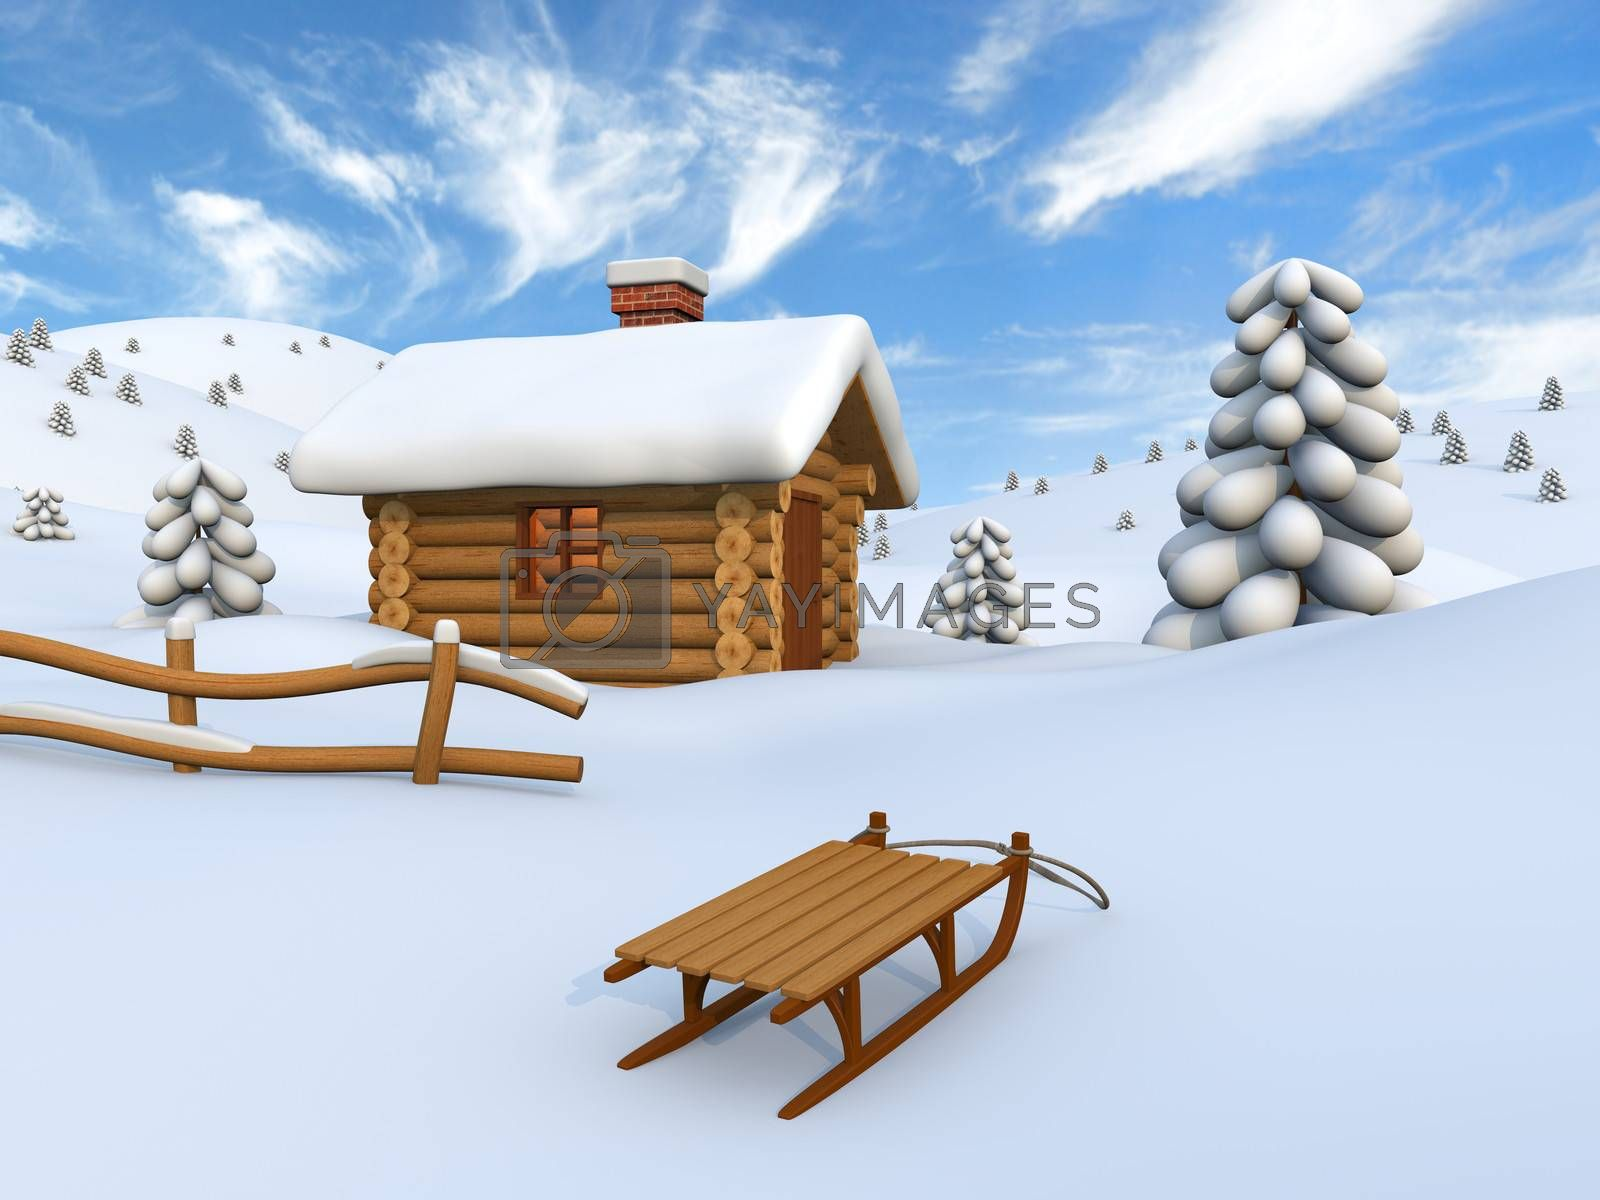 Picturesque winter scenery with log cabin and sledge